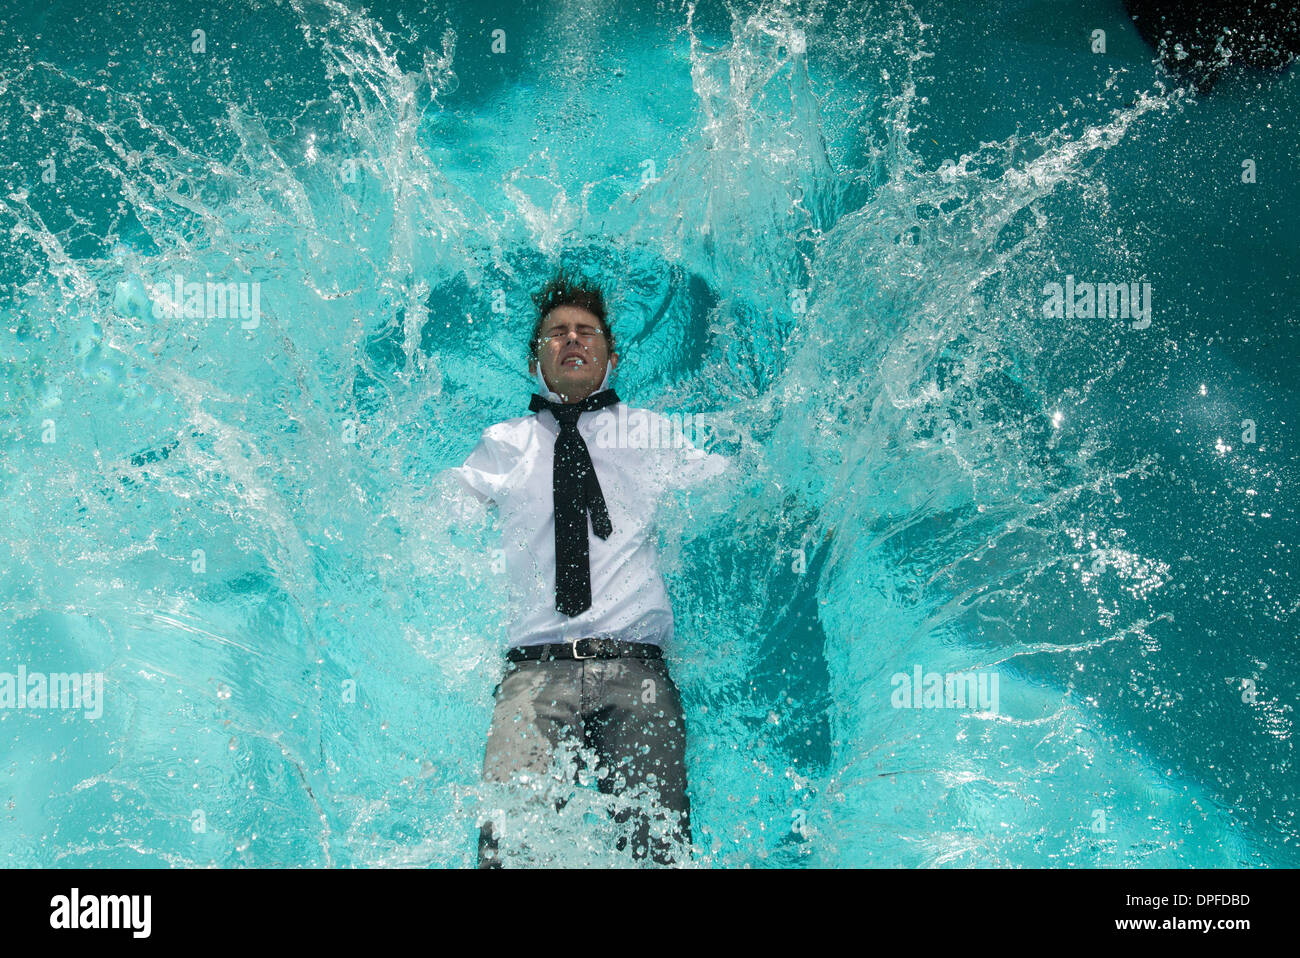 Young man in clothes falling into swimming pool - Stock Image